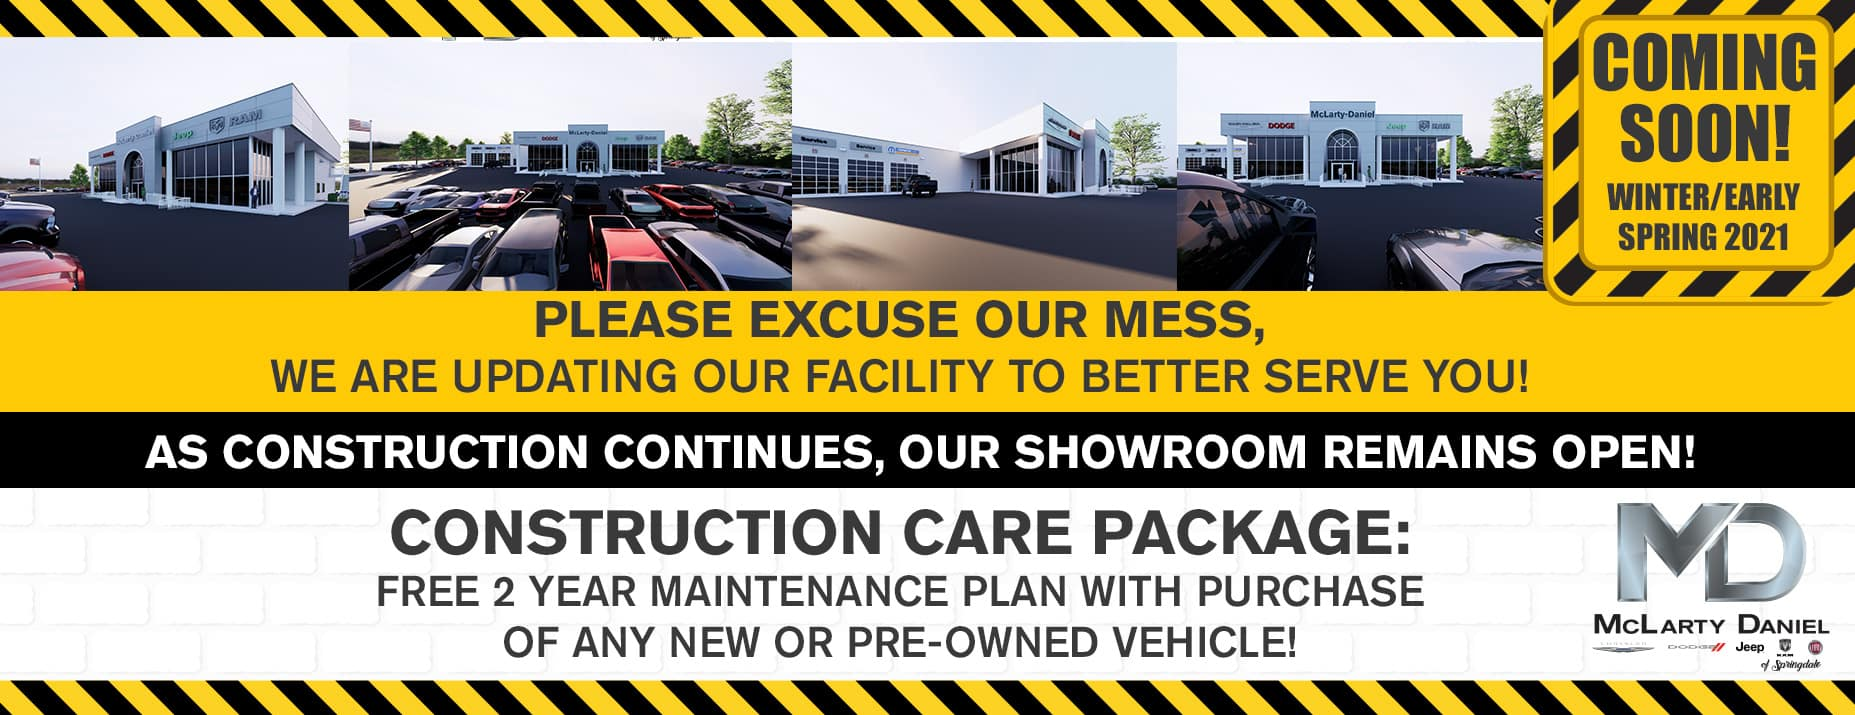 please excuse our mess, we are updating our facility to better serve you!